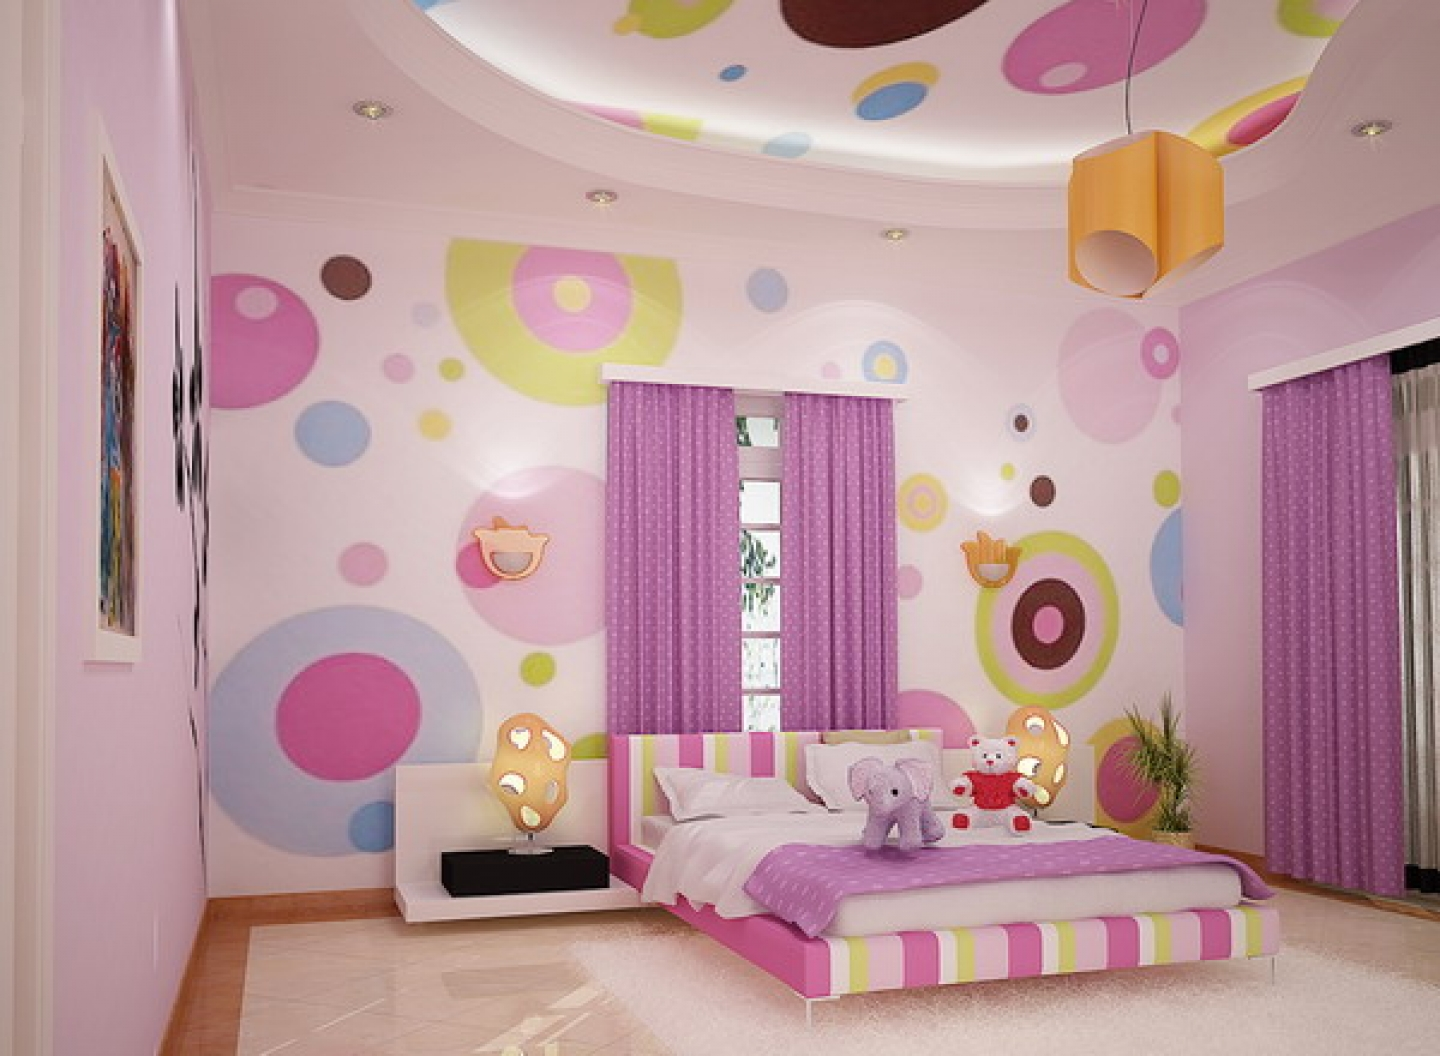 Polka Dots Wallpaper Bedroom Design (Image 7 of 10)